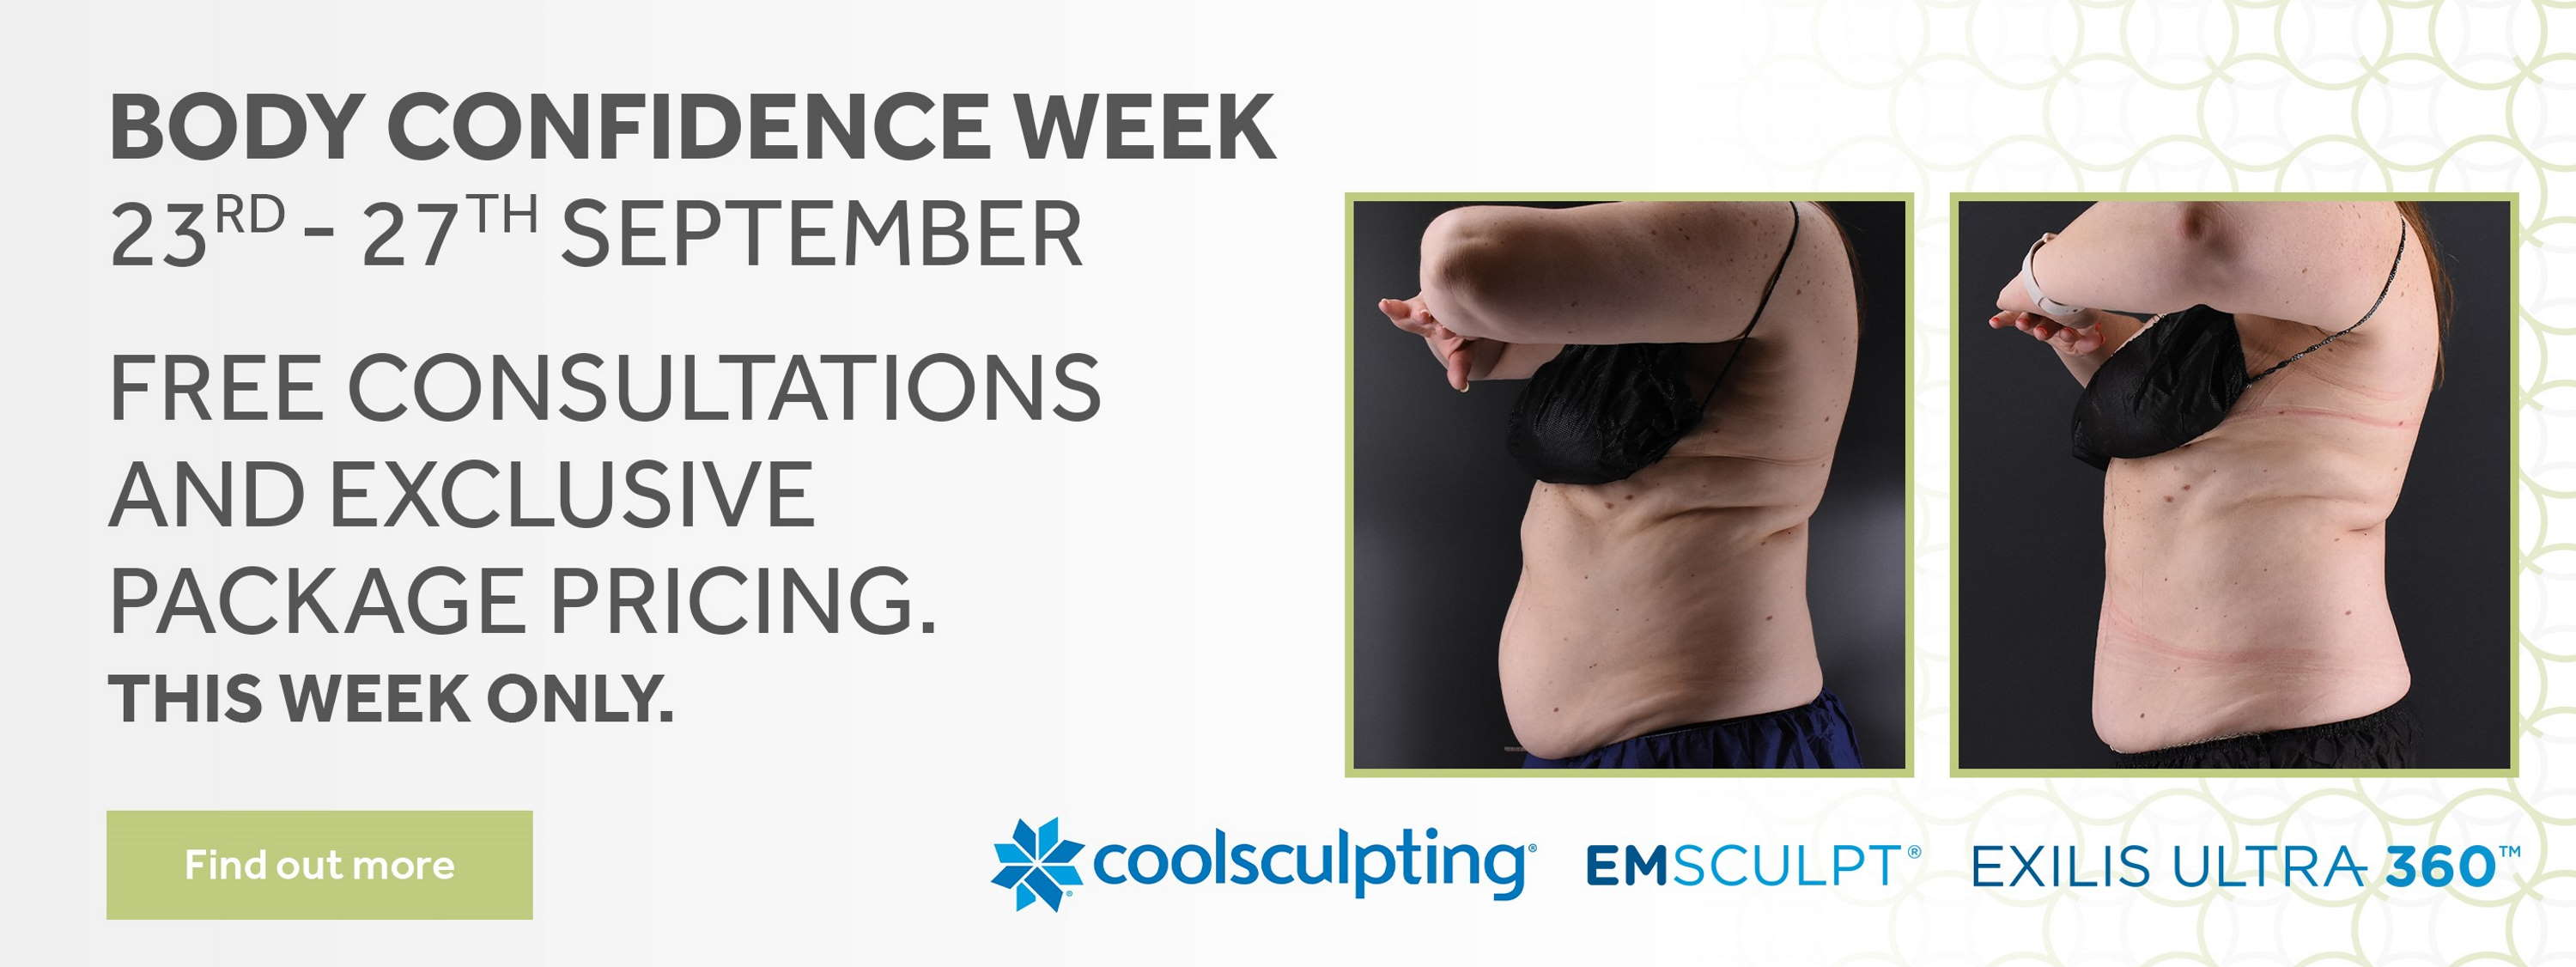 Body confidence event banner